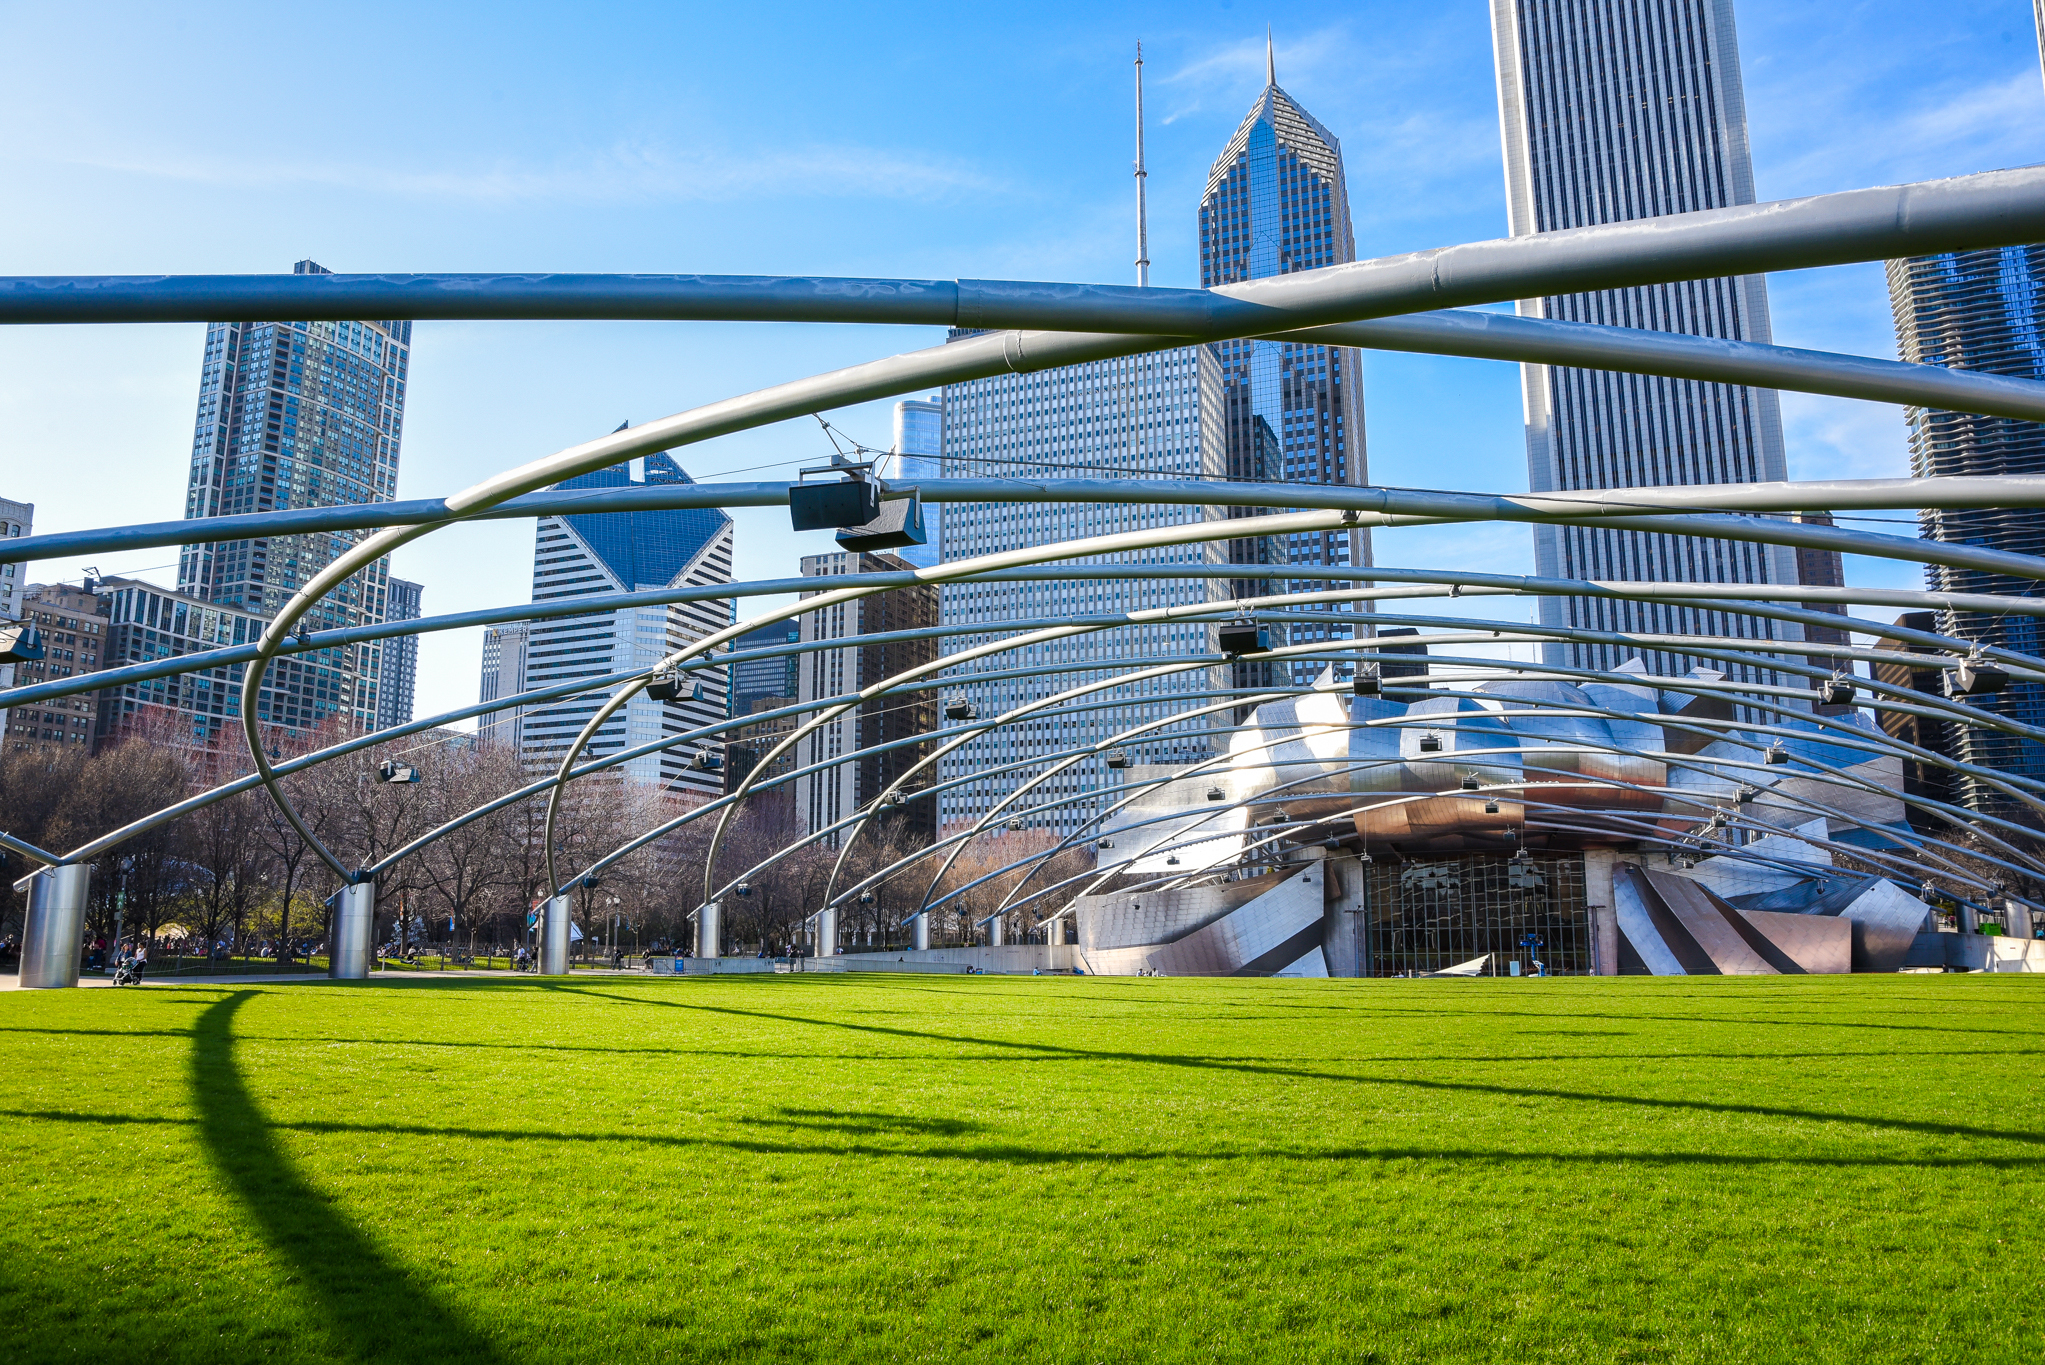 Millennium Park's Great Lawn reopens with social distancing circles